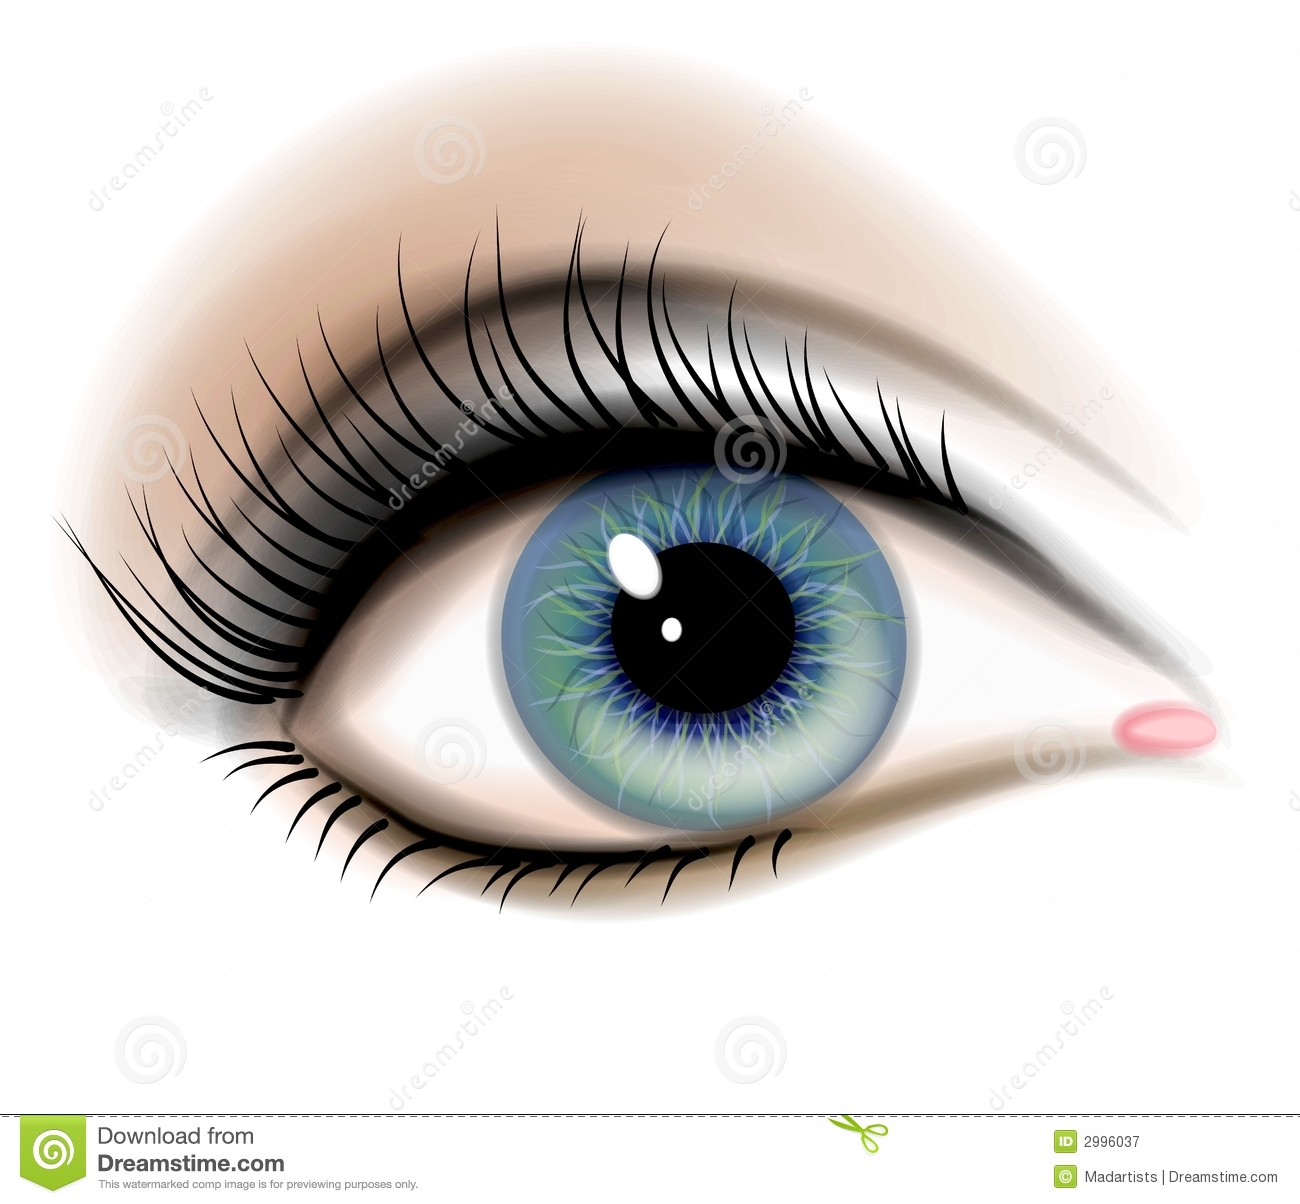 Female Human Eye Illustration Royalty Free Stock